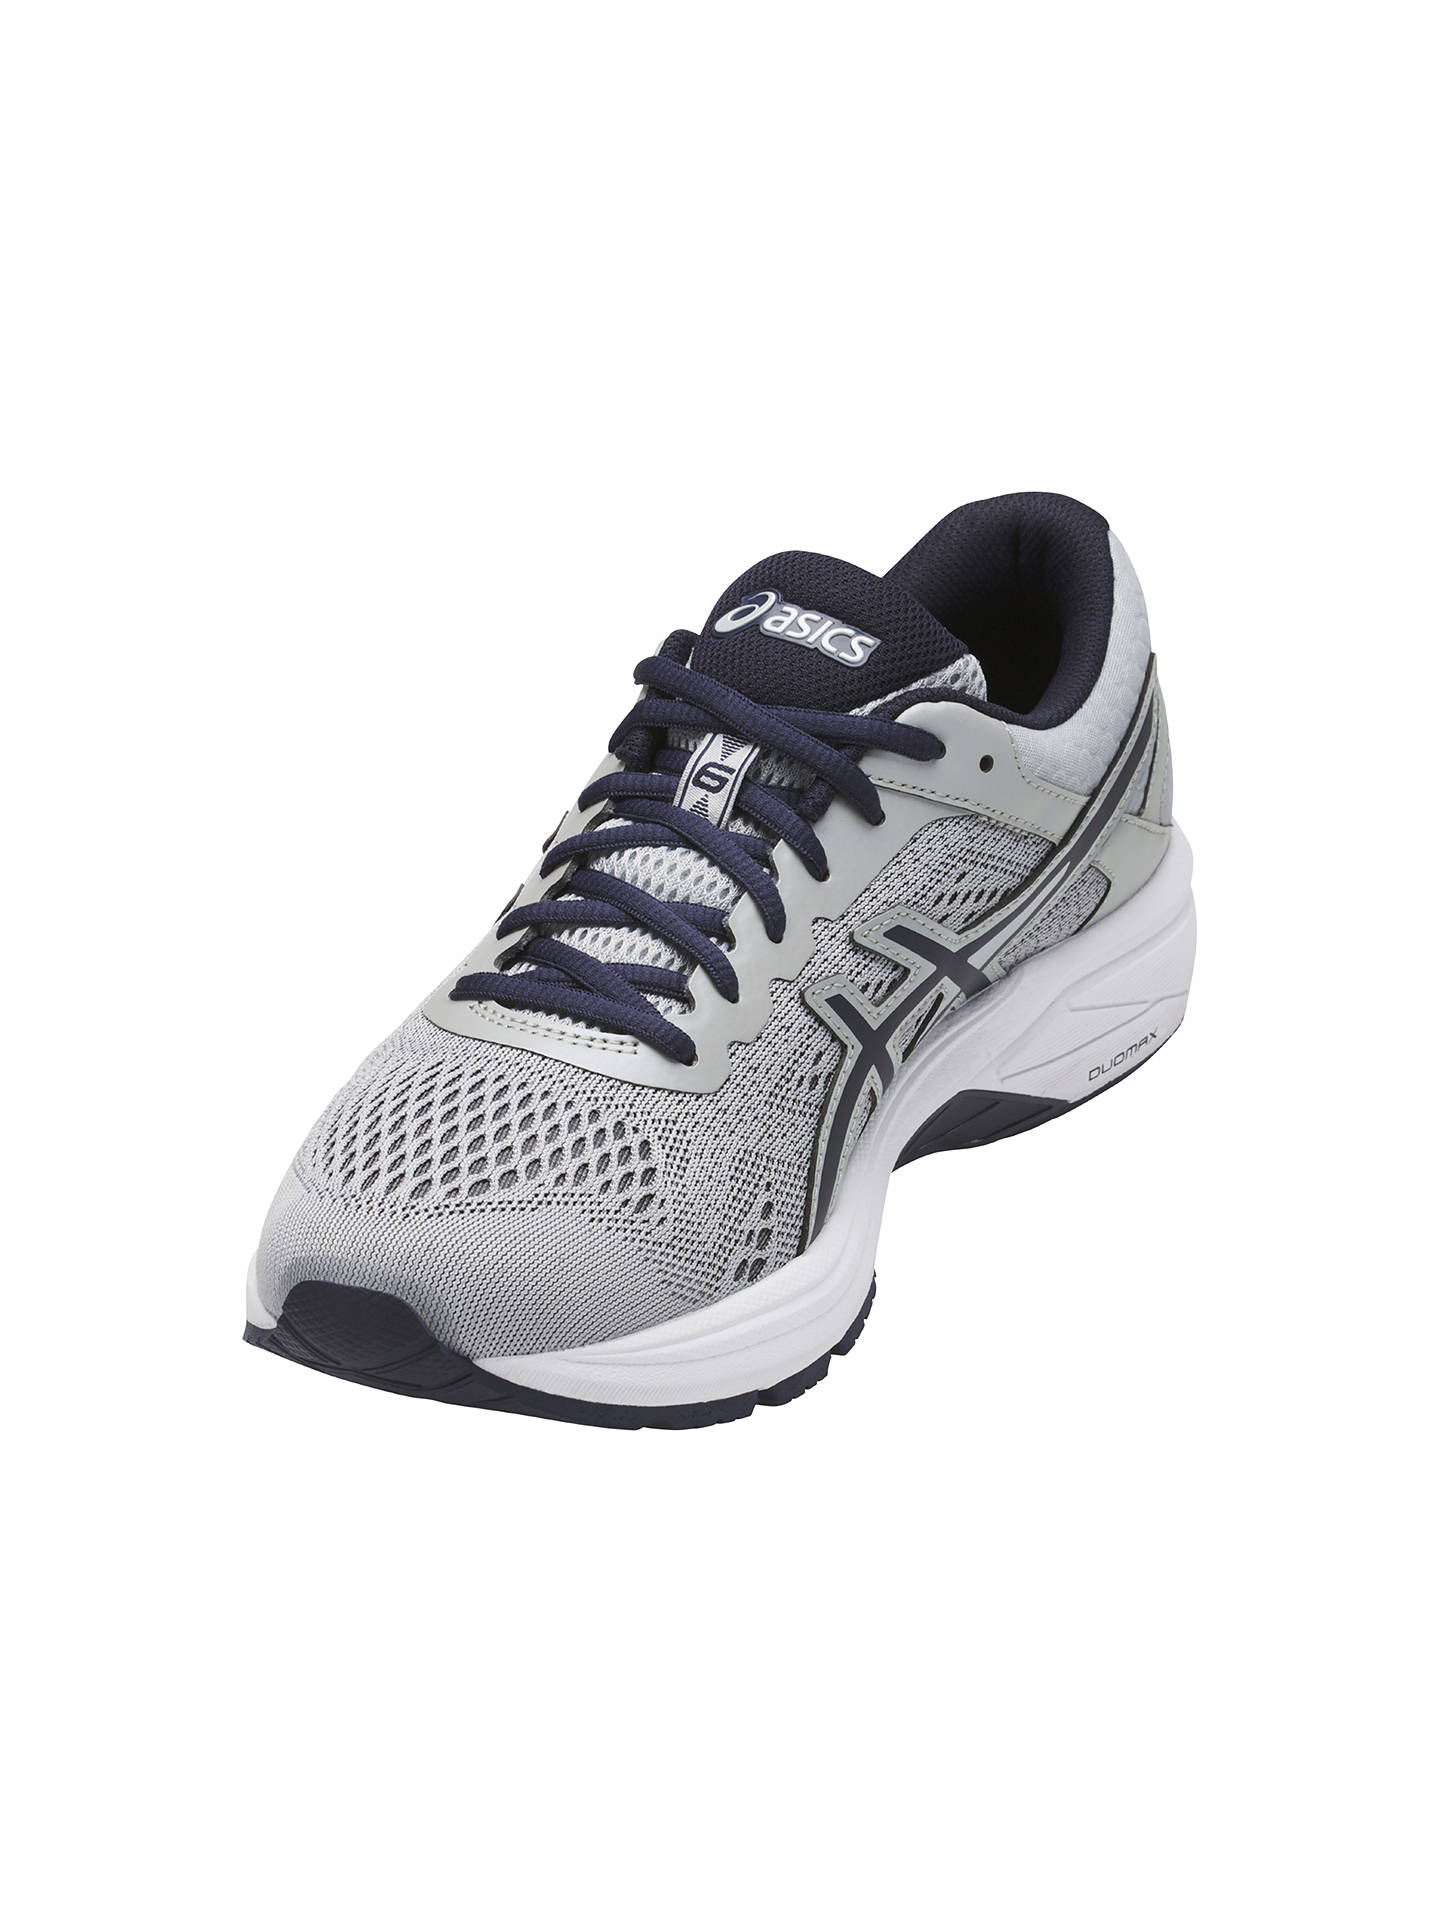 51f506d6 Asics GT-1000 6 Men's Running Shoes at John Lewis & Partners